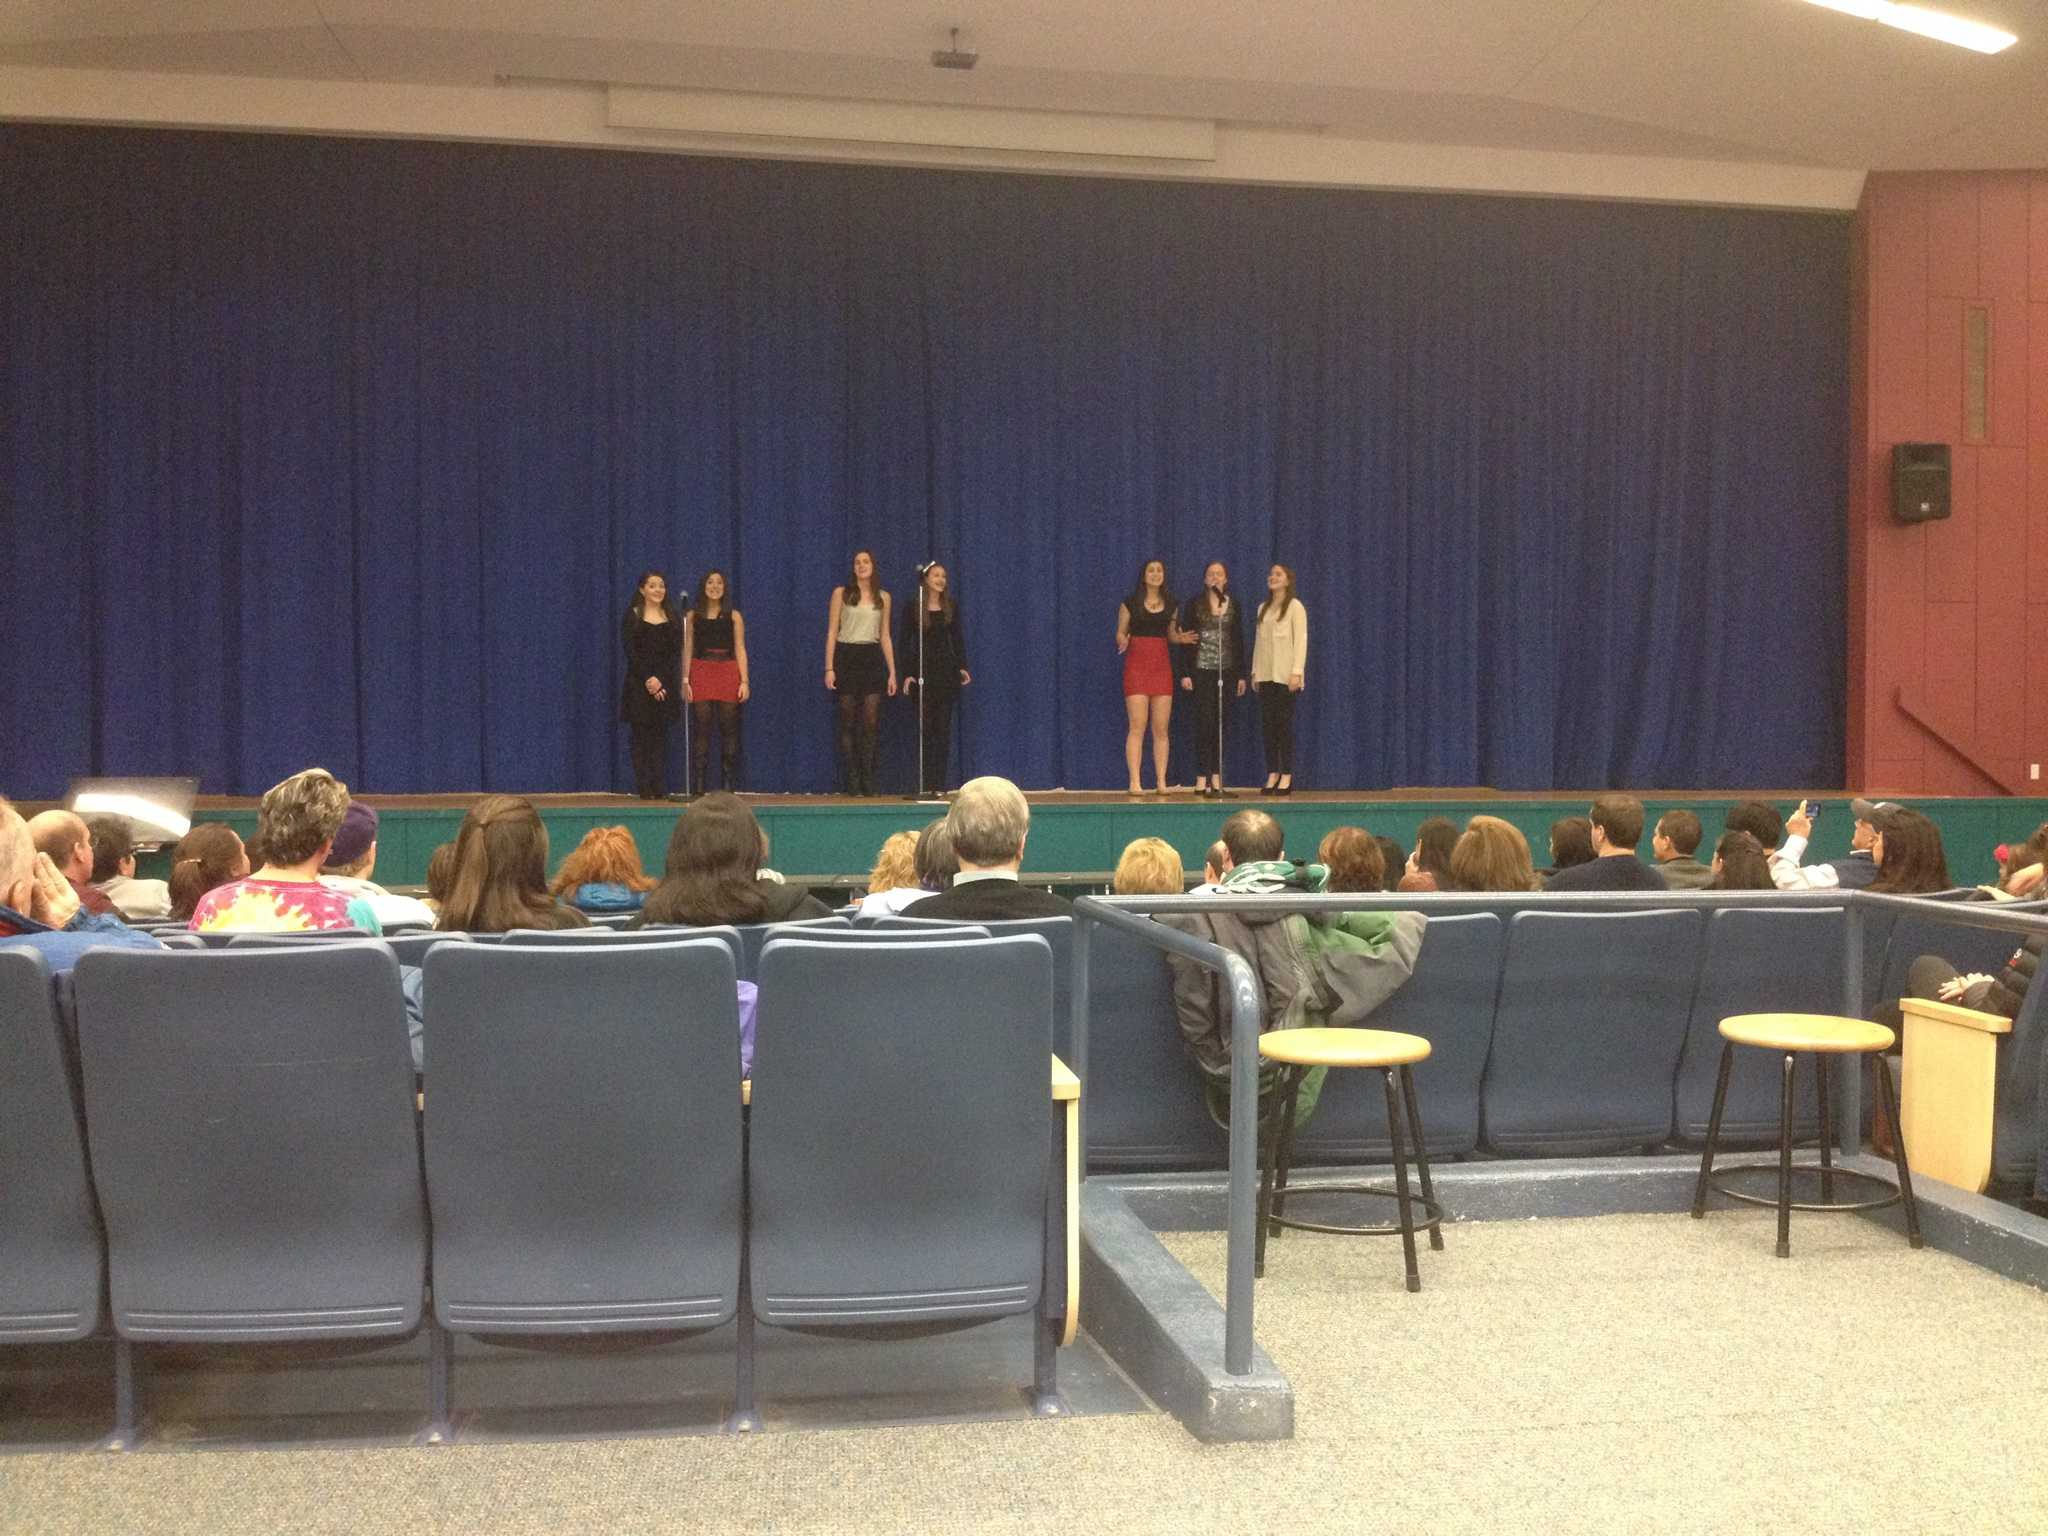 The girls of the group perform the song She's In Love from the musical